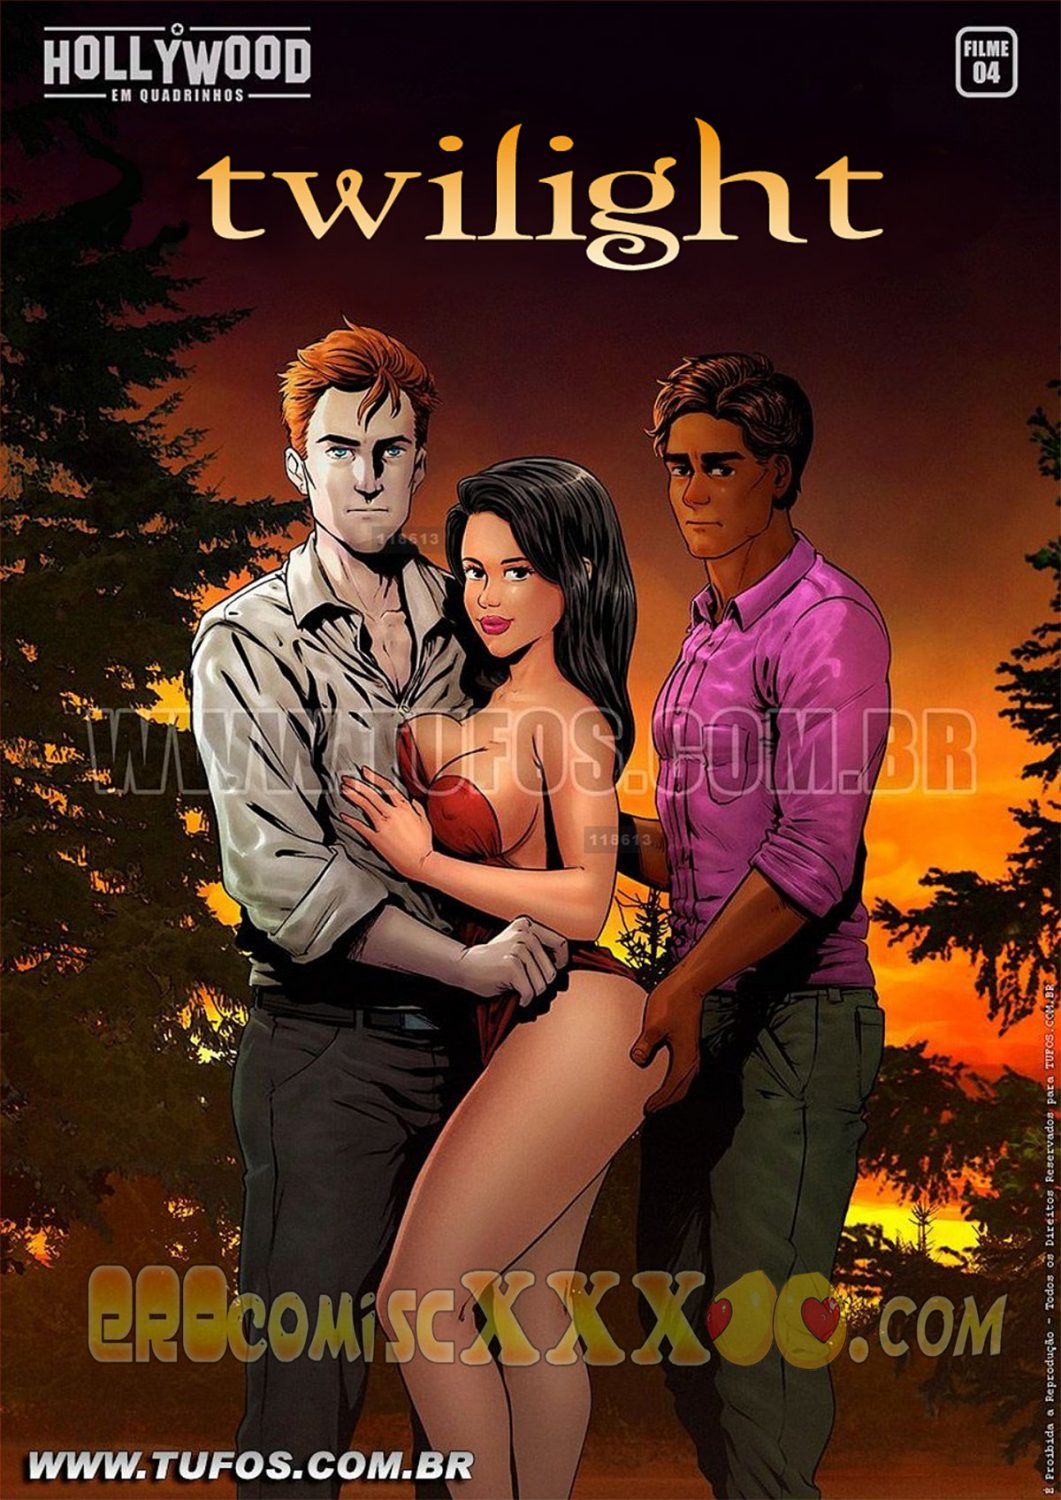 001 2 1061x1500 - In Hollywood Em Quadrinhos 4. Twilight.